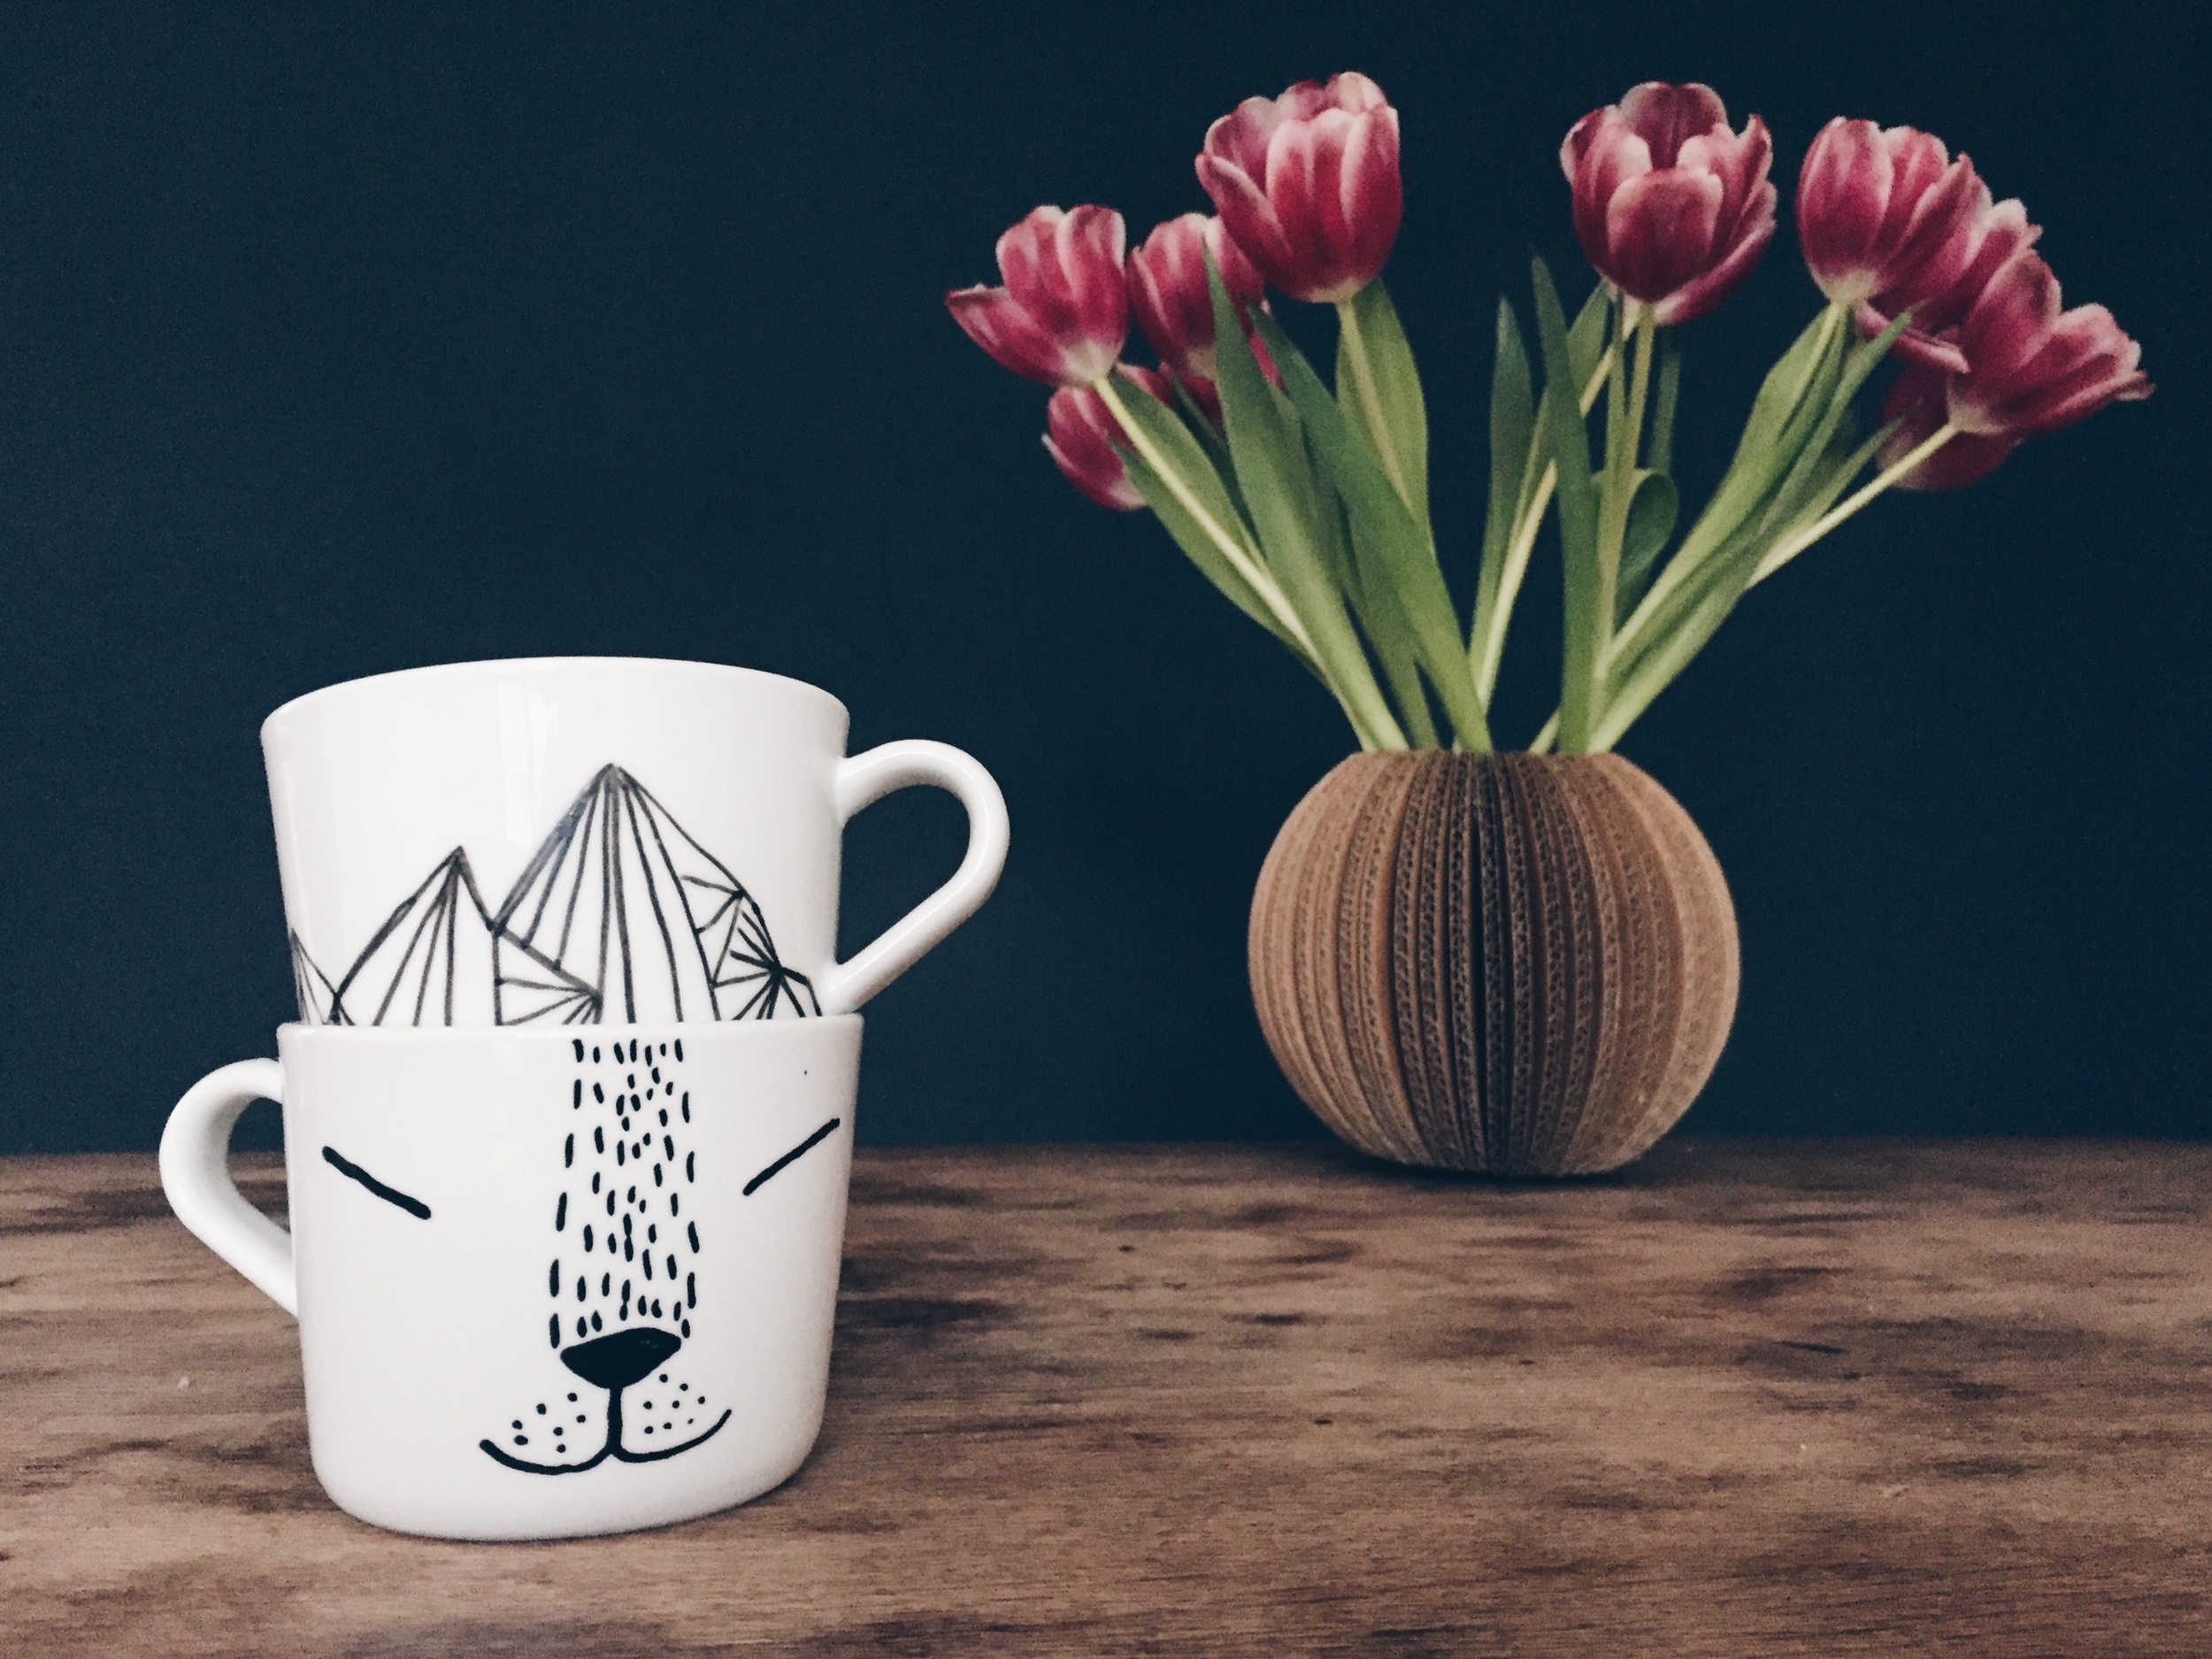 DIY painted ikea mugs